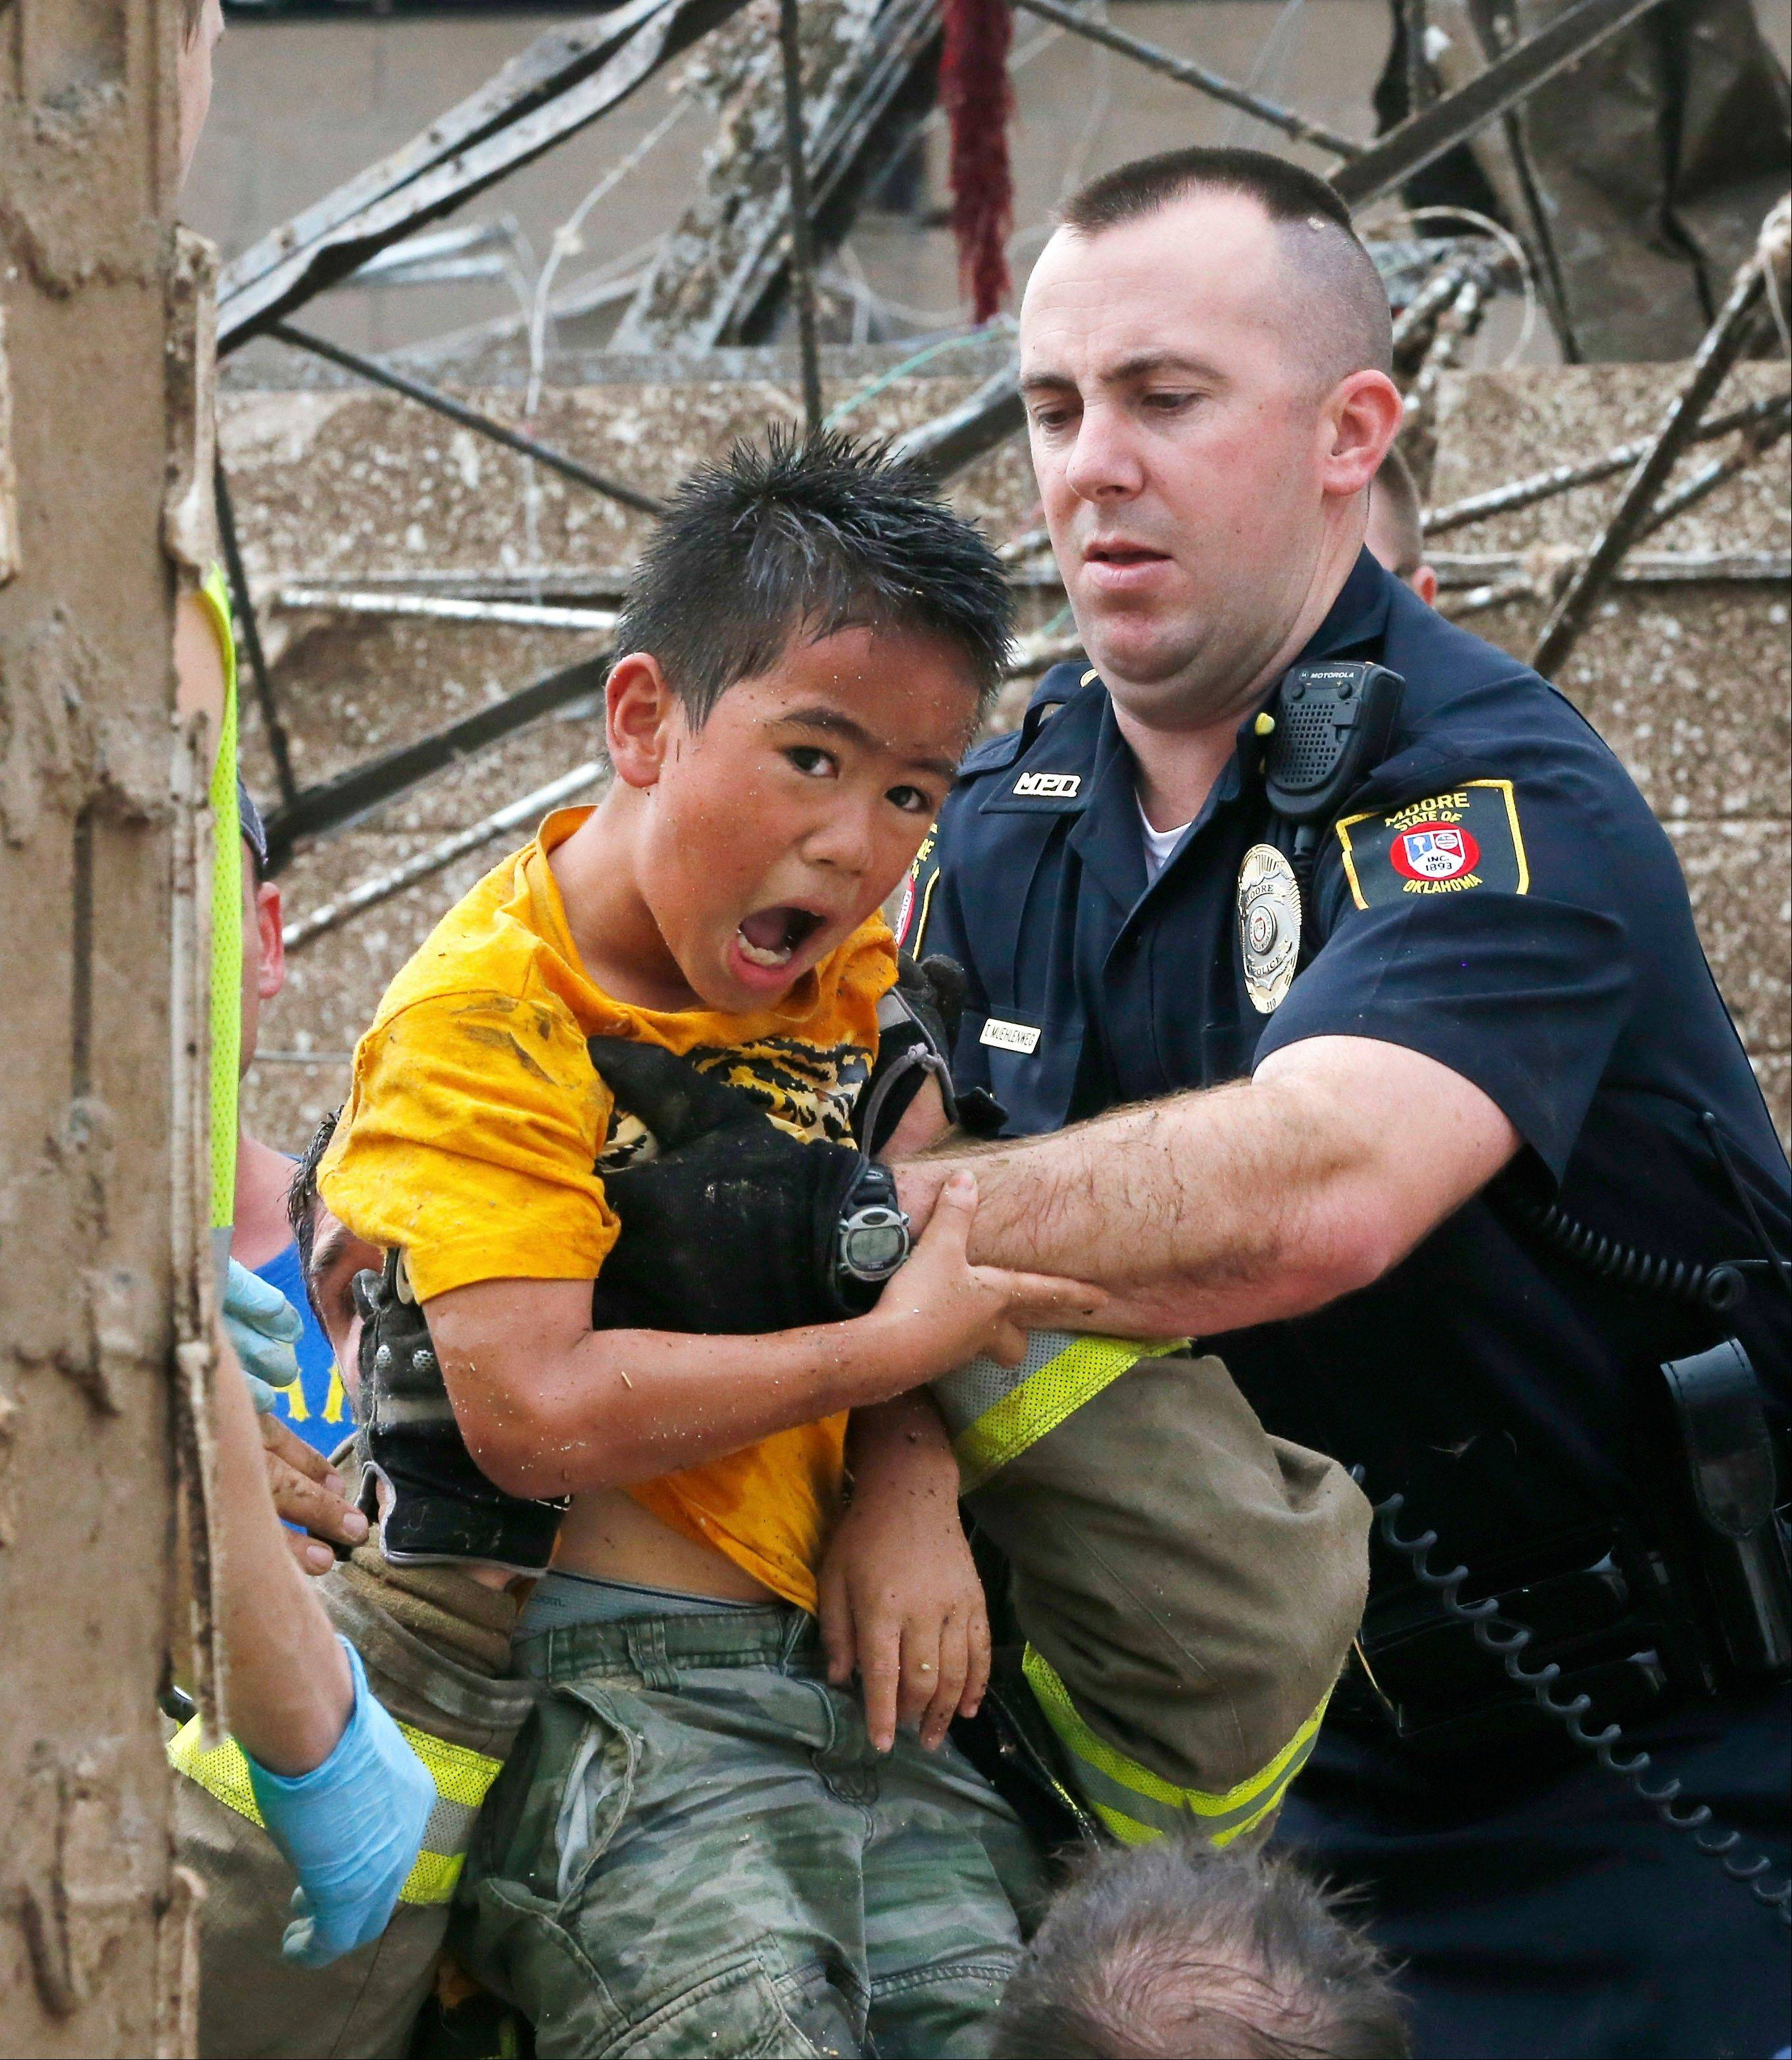 A boy is pulled from beneath a collapsed wall at the Plaza Towers Elementary School following a tornado in Moore, Okla., Monday, May 20, 2013. A tornado as much as a mile (1.6 kilometer) wide with winds up to 200 mph (320 kph) roared through the Oklahoma City suburbs Monday, flattening entire neighborhoods, setting buildings on fire and landing a direct blow on the elementary school.